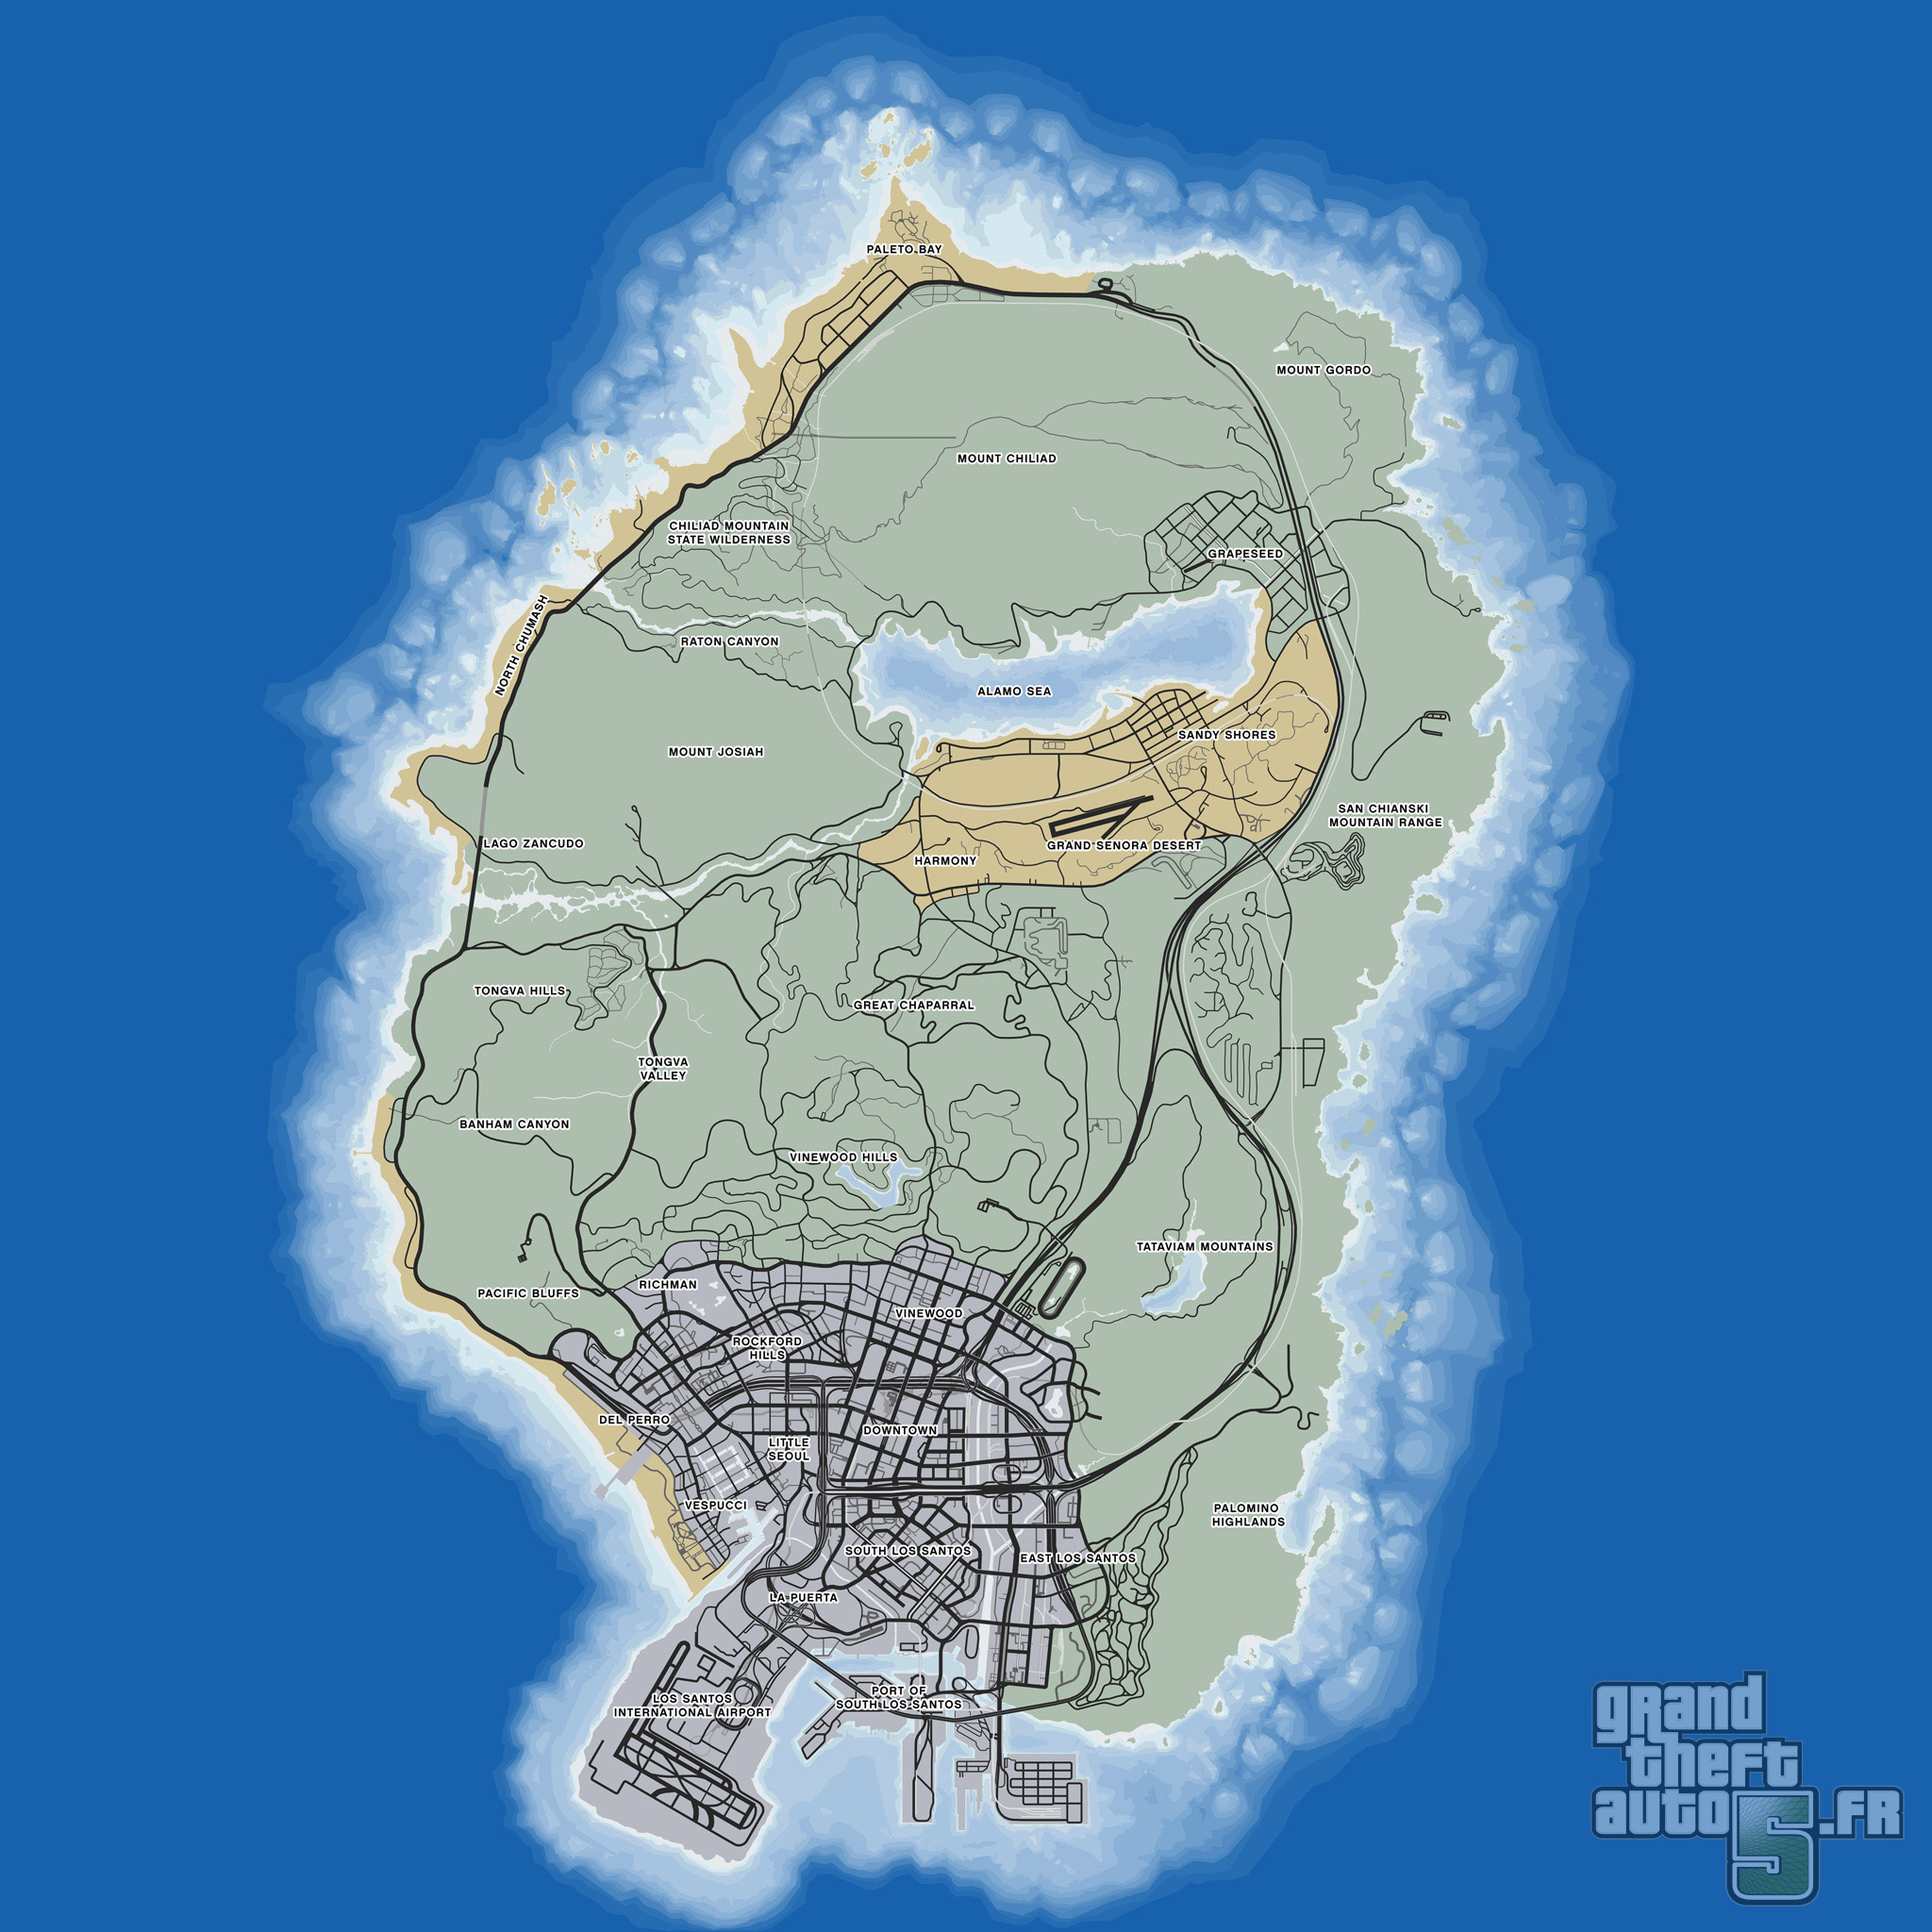 carte-routiere-gta-5.jpg